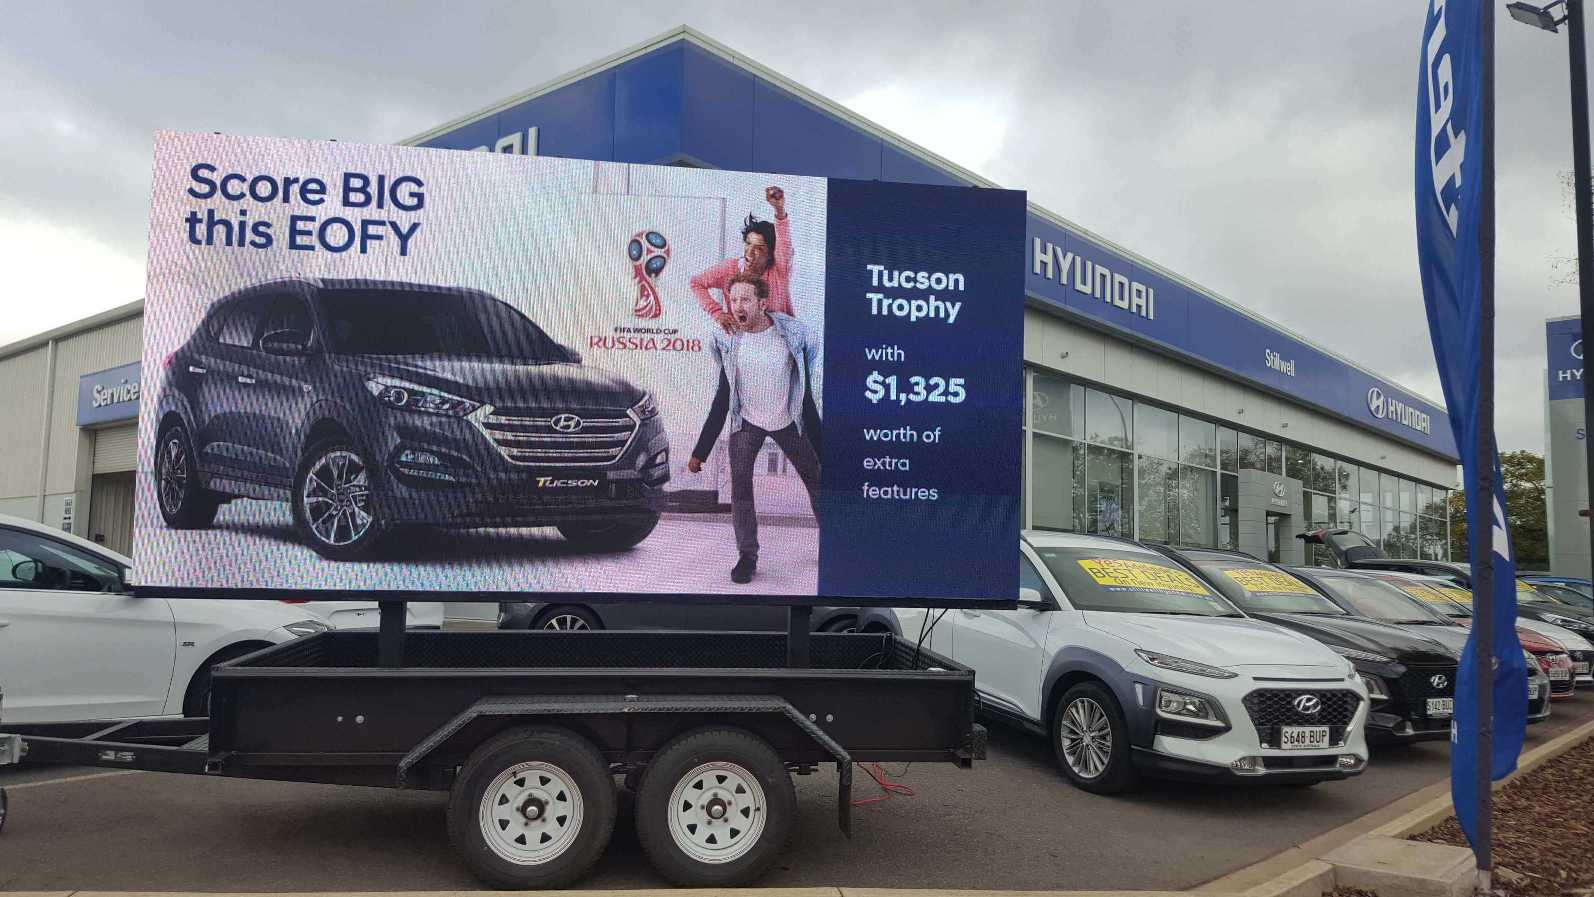 Our LED Screen used as promotional display for Hyundai Nailsworth